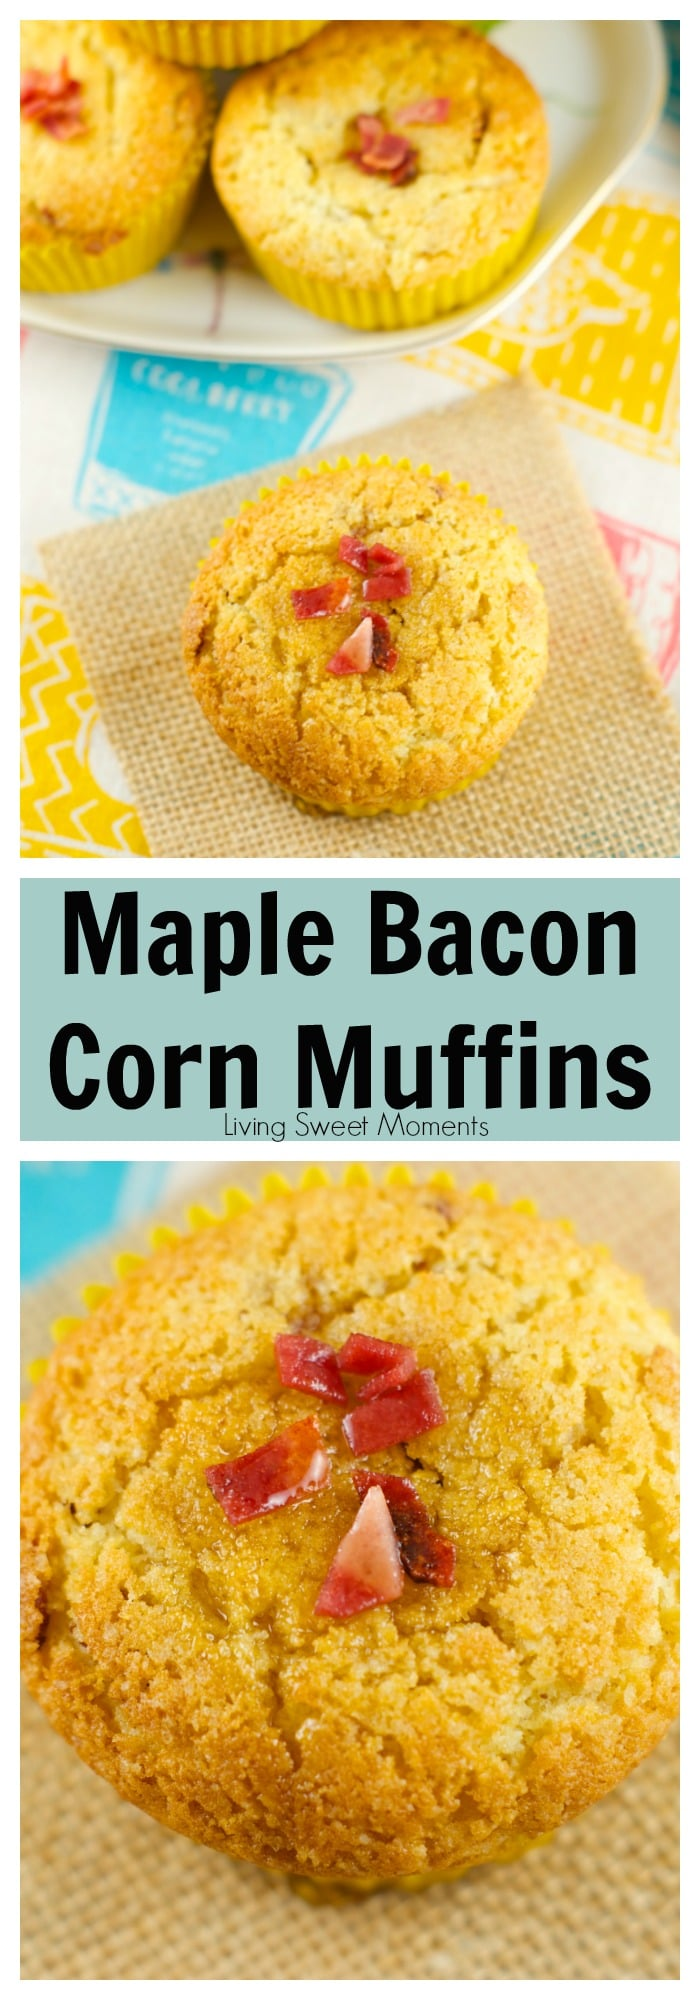 Maple Bacon Corn Muffins – these moist muffins are bursting with flavor! Easy to make and delicious. The batter is filled with bacon bits and maple flavor, making them the perfect brunch or breakfast recipe!